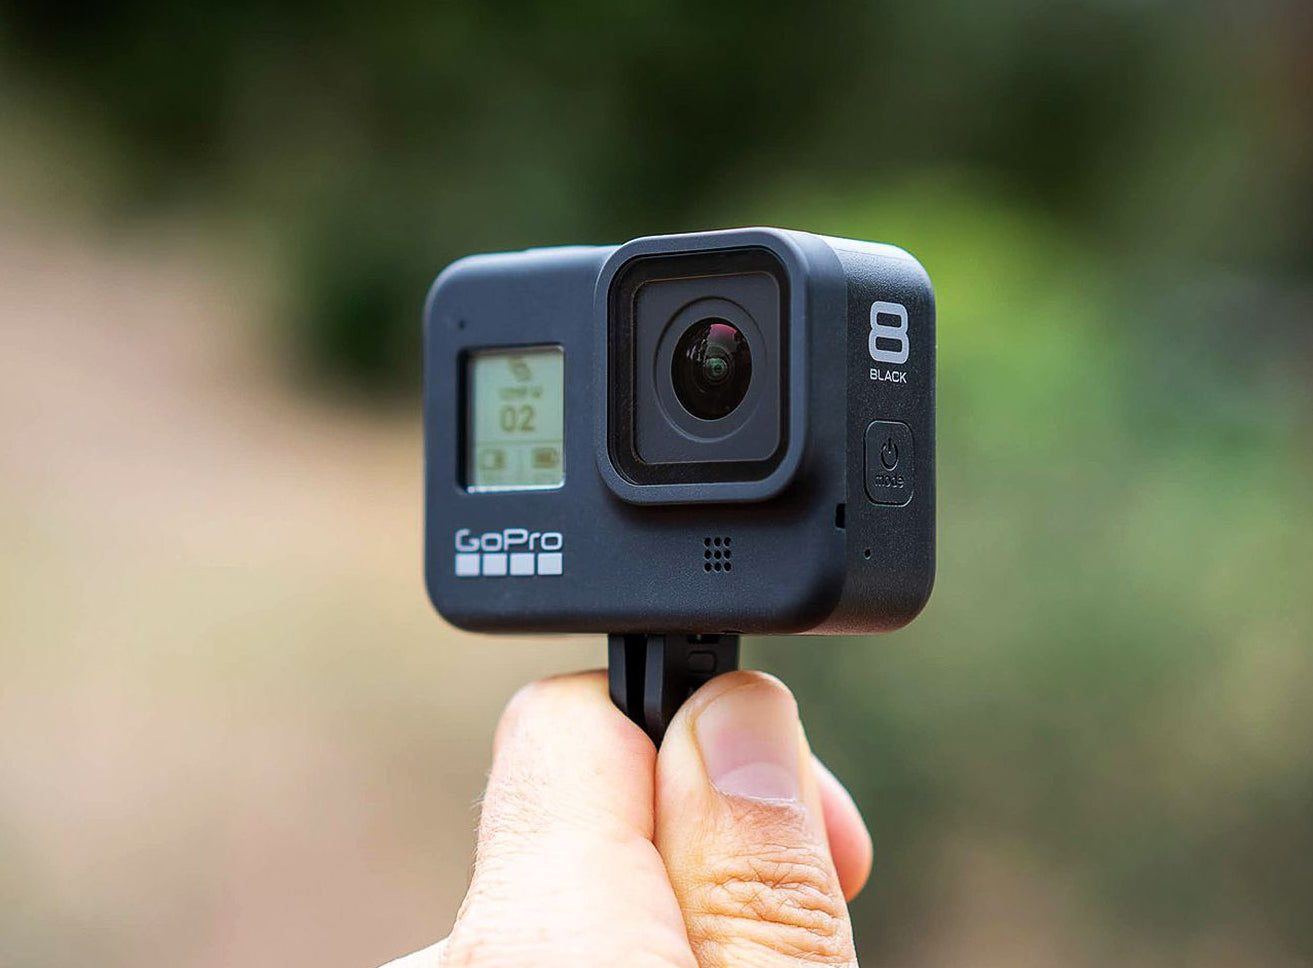 Holding the new GoPro Hero 8 Black (photo by The Verge)